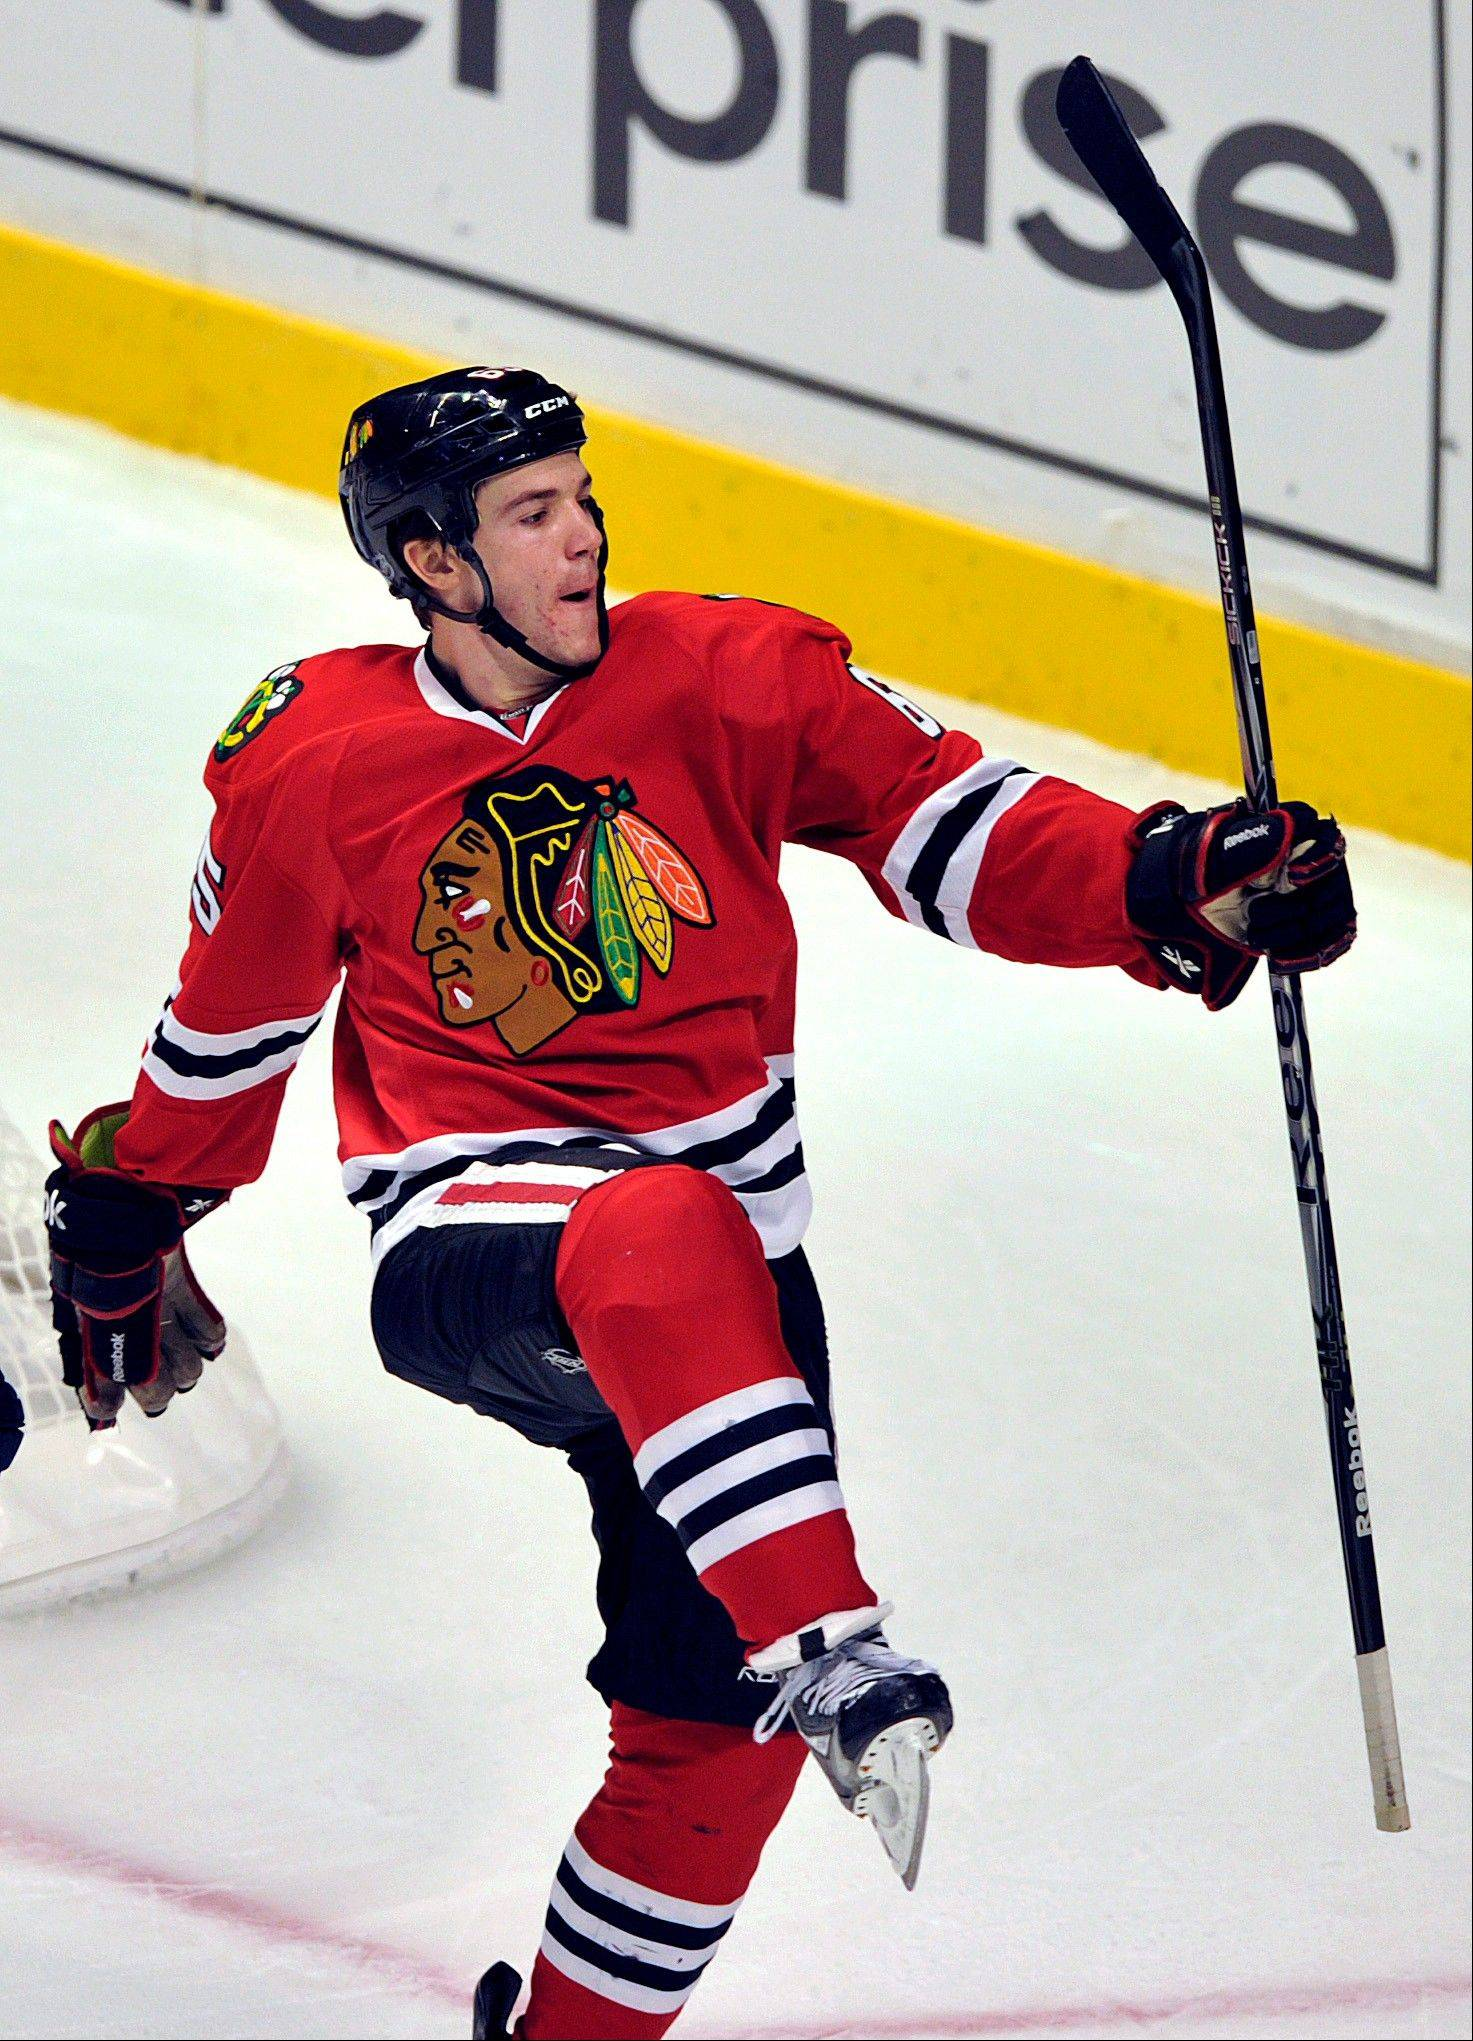 Andrew Shaw celebrates the only goal of the game Sunday night at the United Center. Shaw's fourth goal of the season gave the Hawks a 1-0 victory.